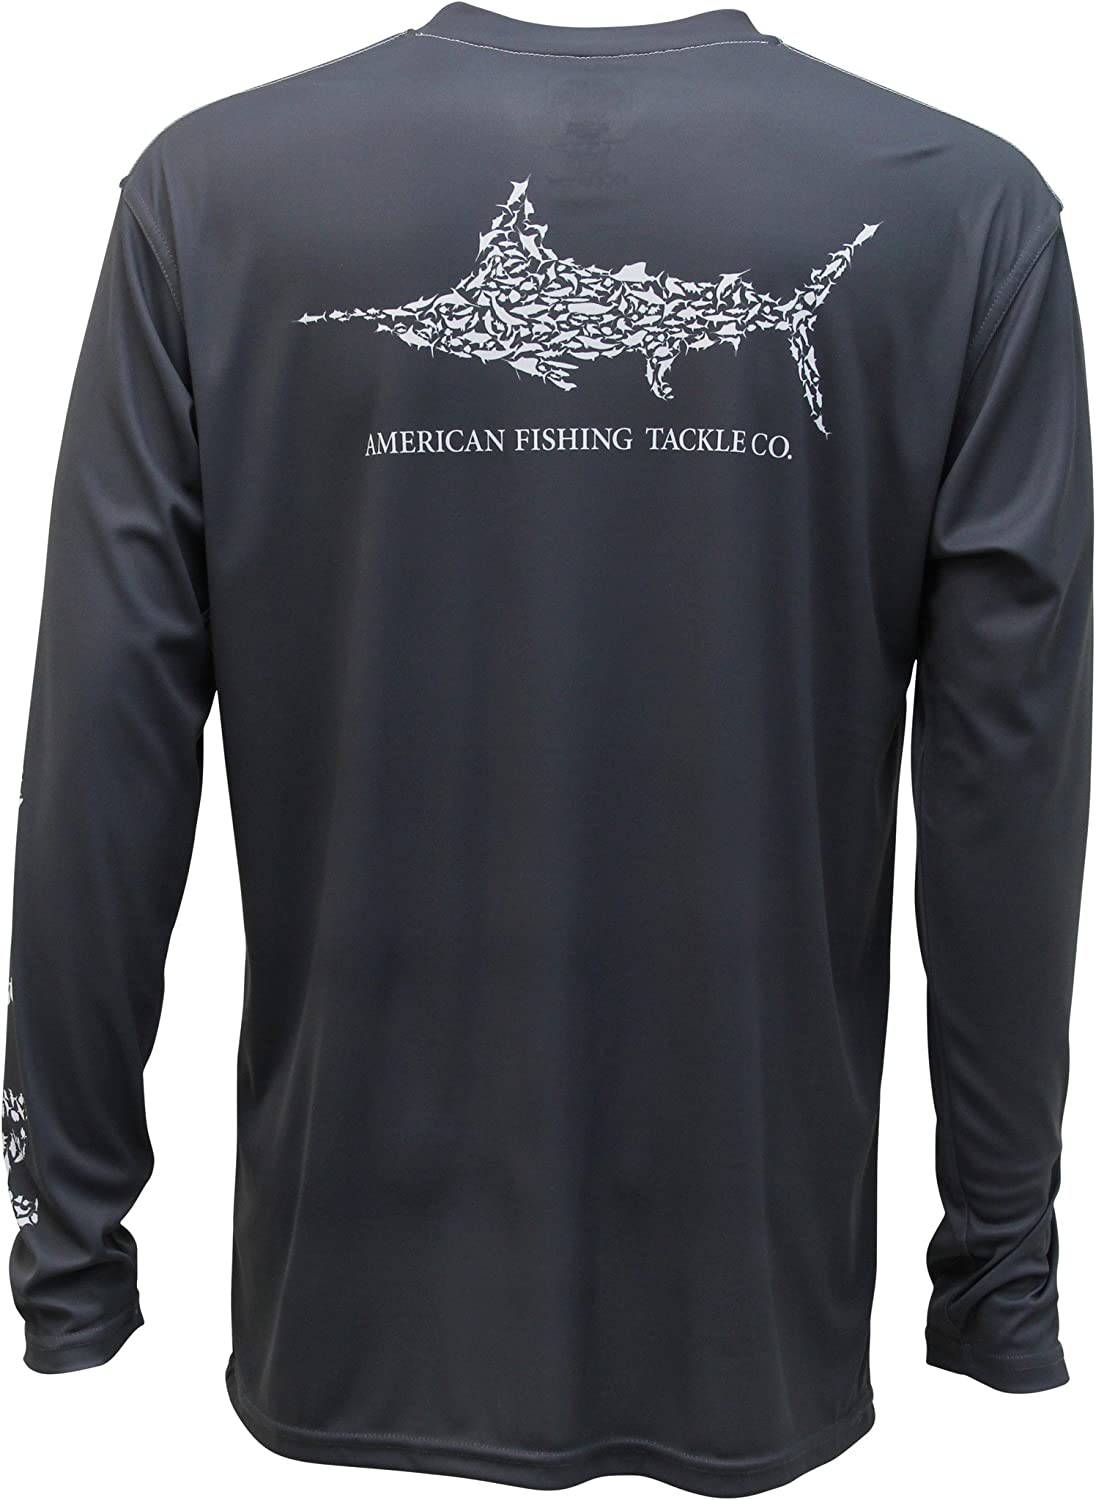 AFTCO Jigfish Performance Long Sleeve Shirt